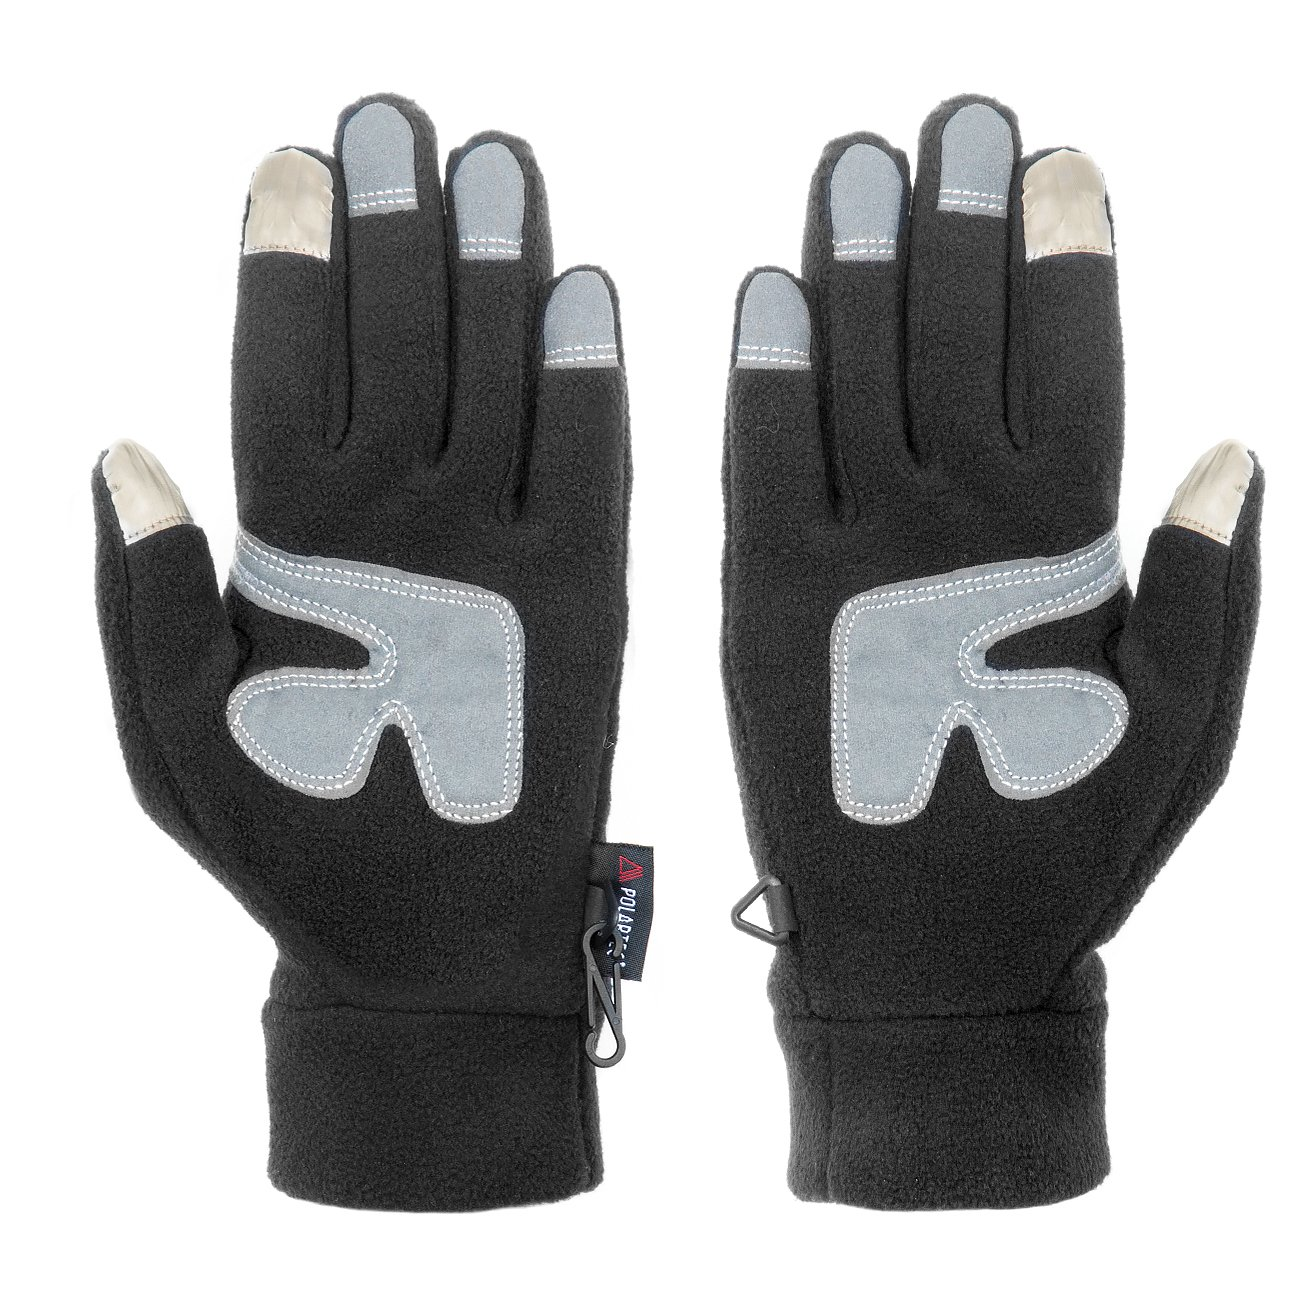 Buy Fleece Running Gloves Now!